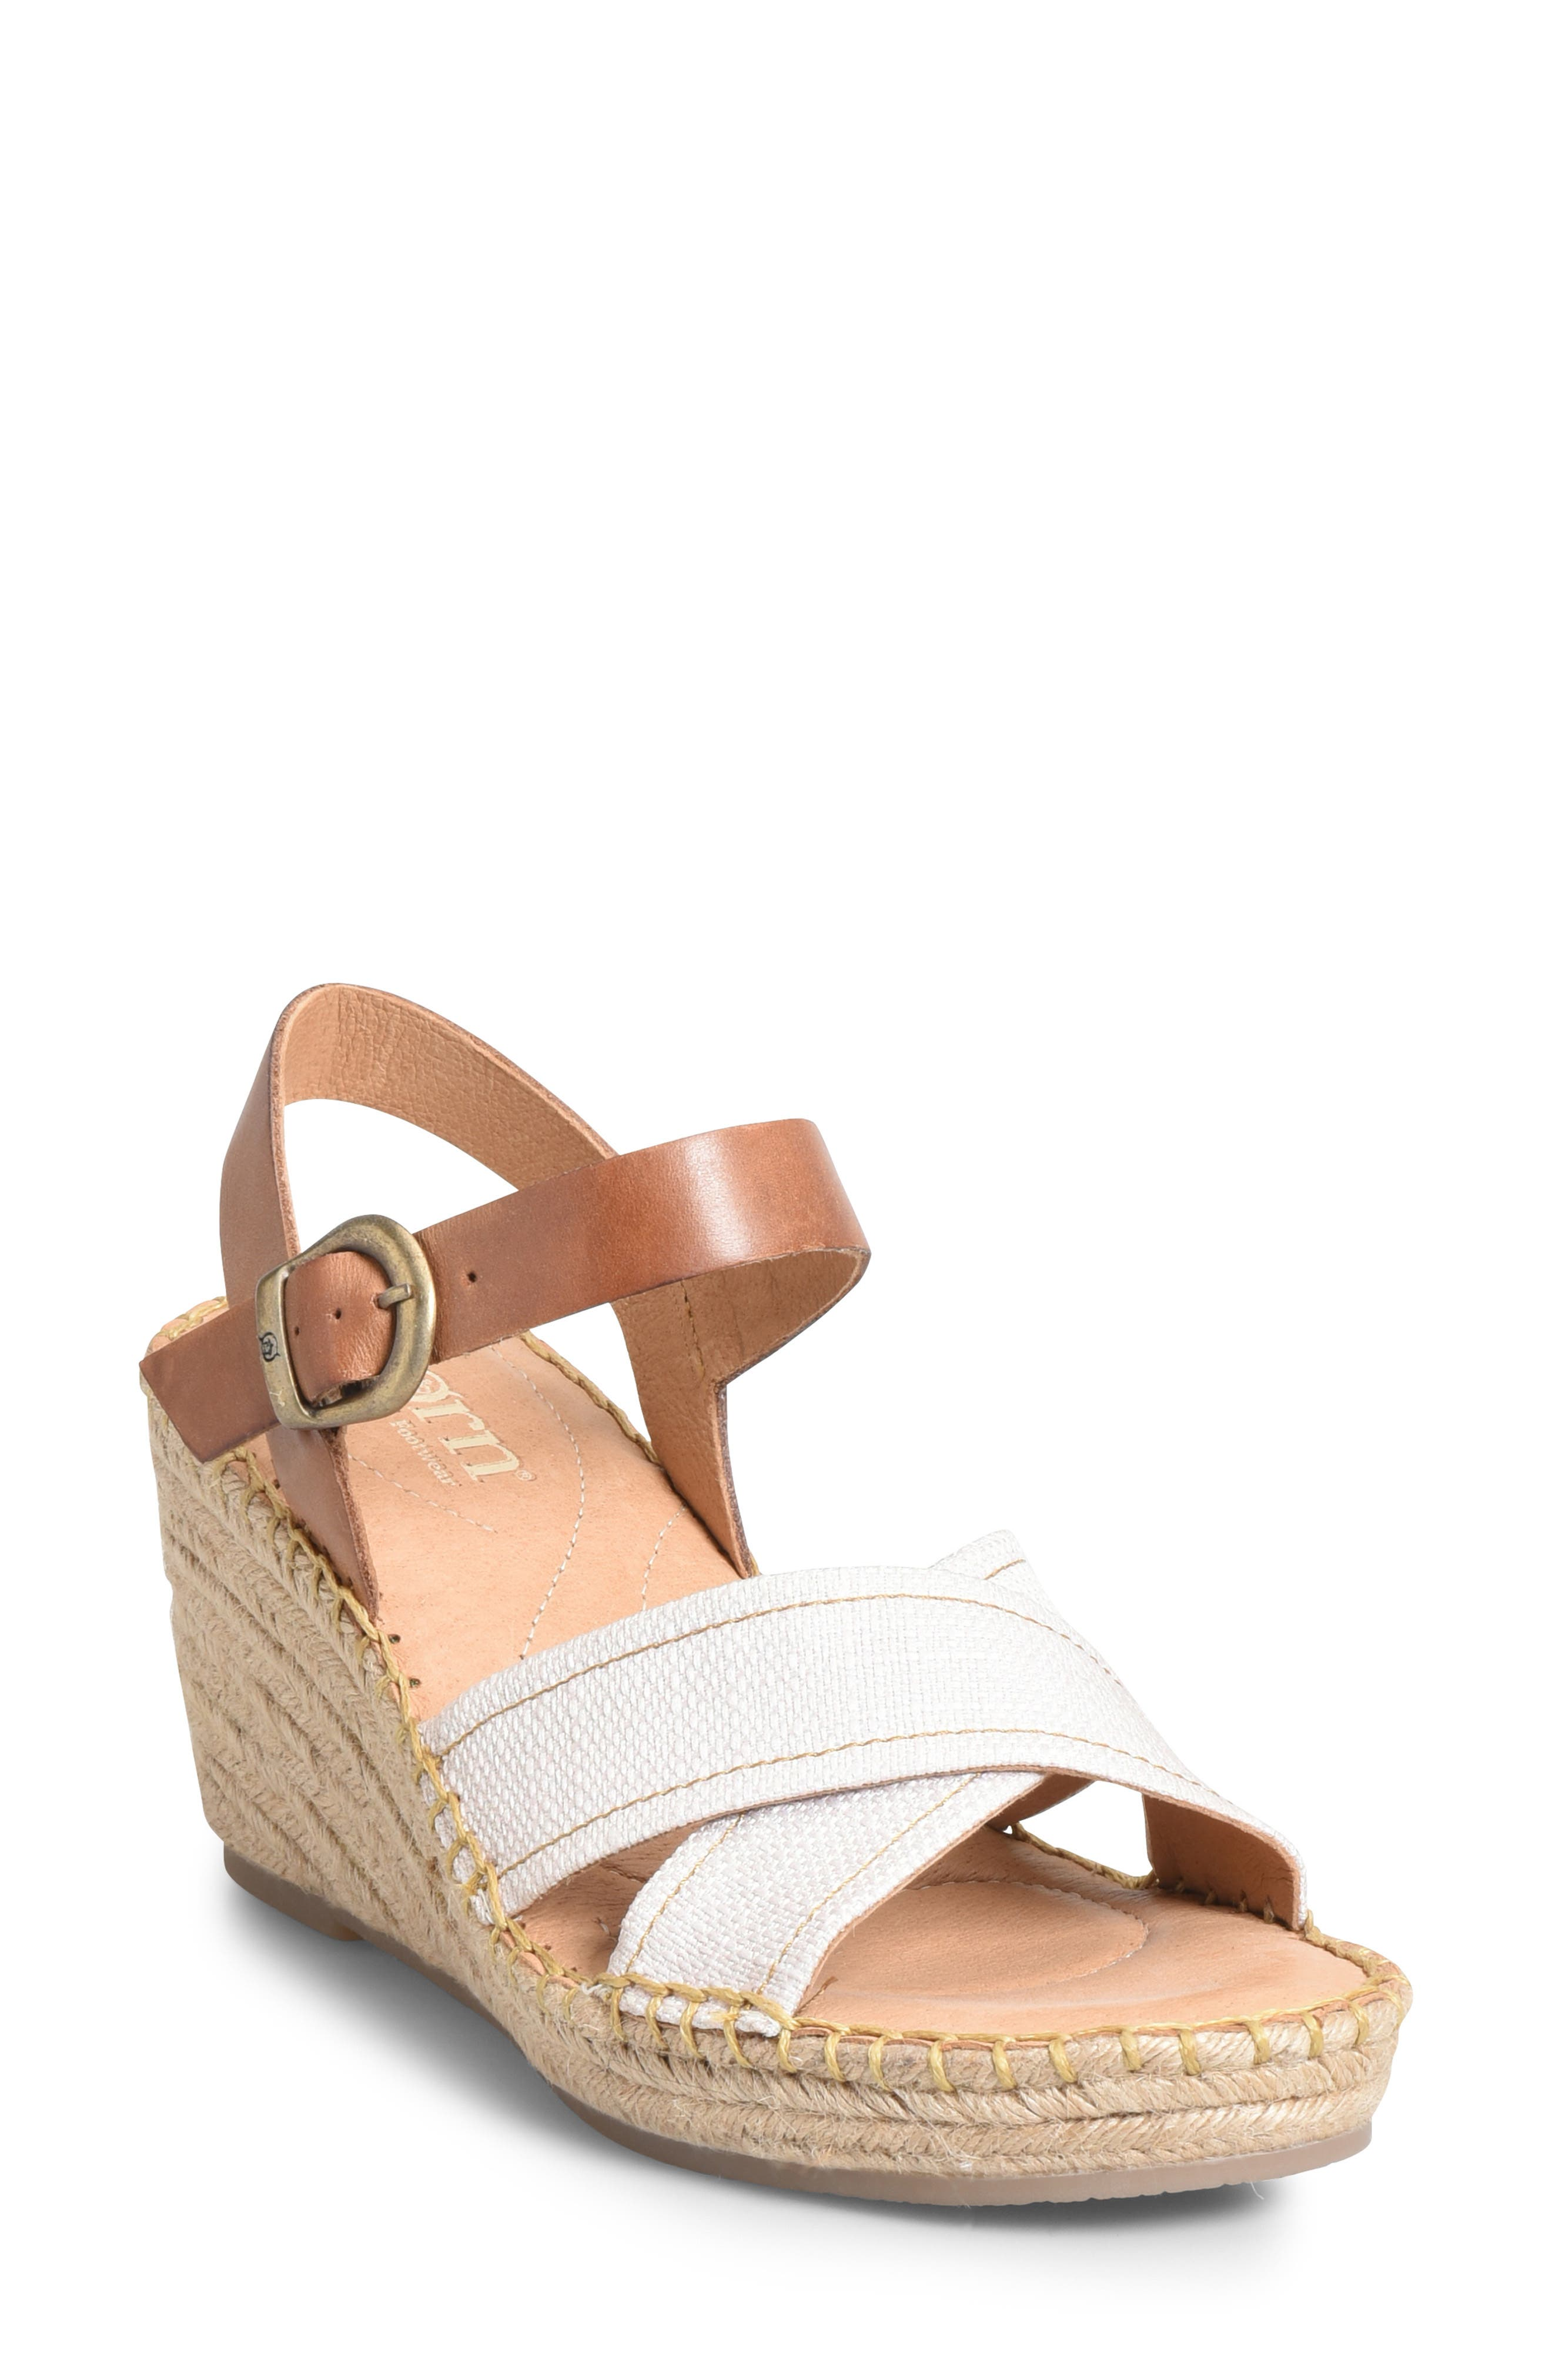 Payette Wedge Sandal, Main, color, NATURAL/ TAN LEATHER